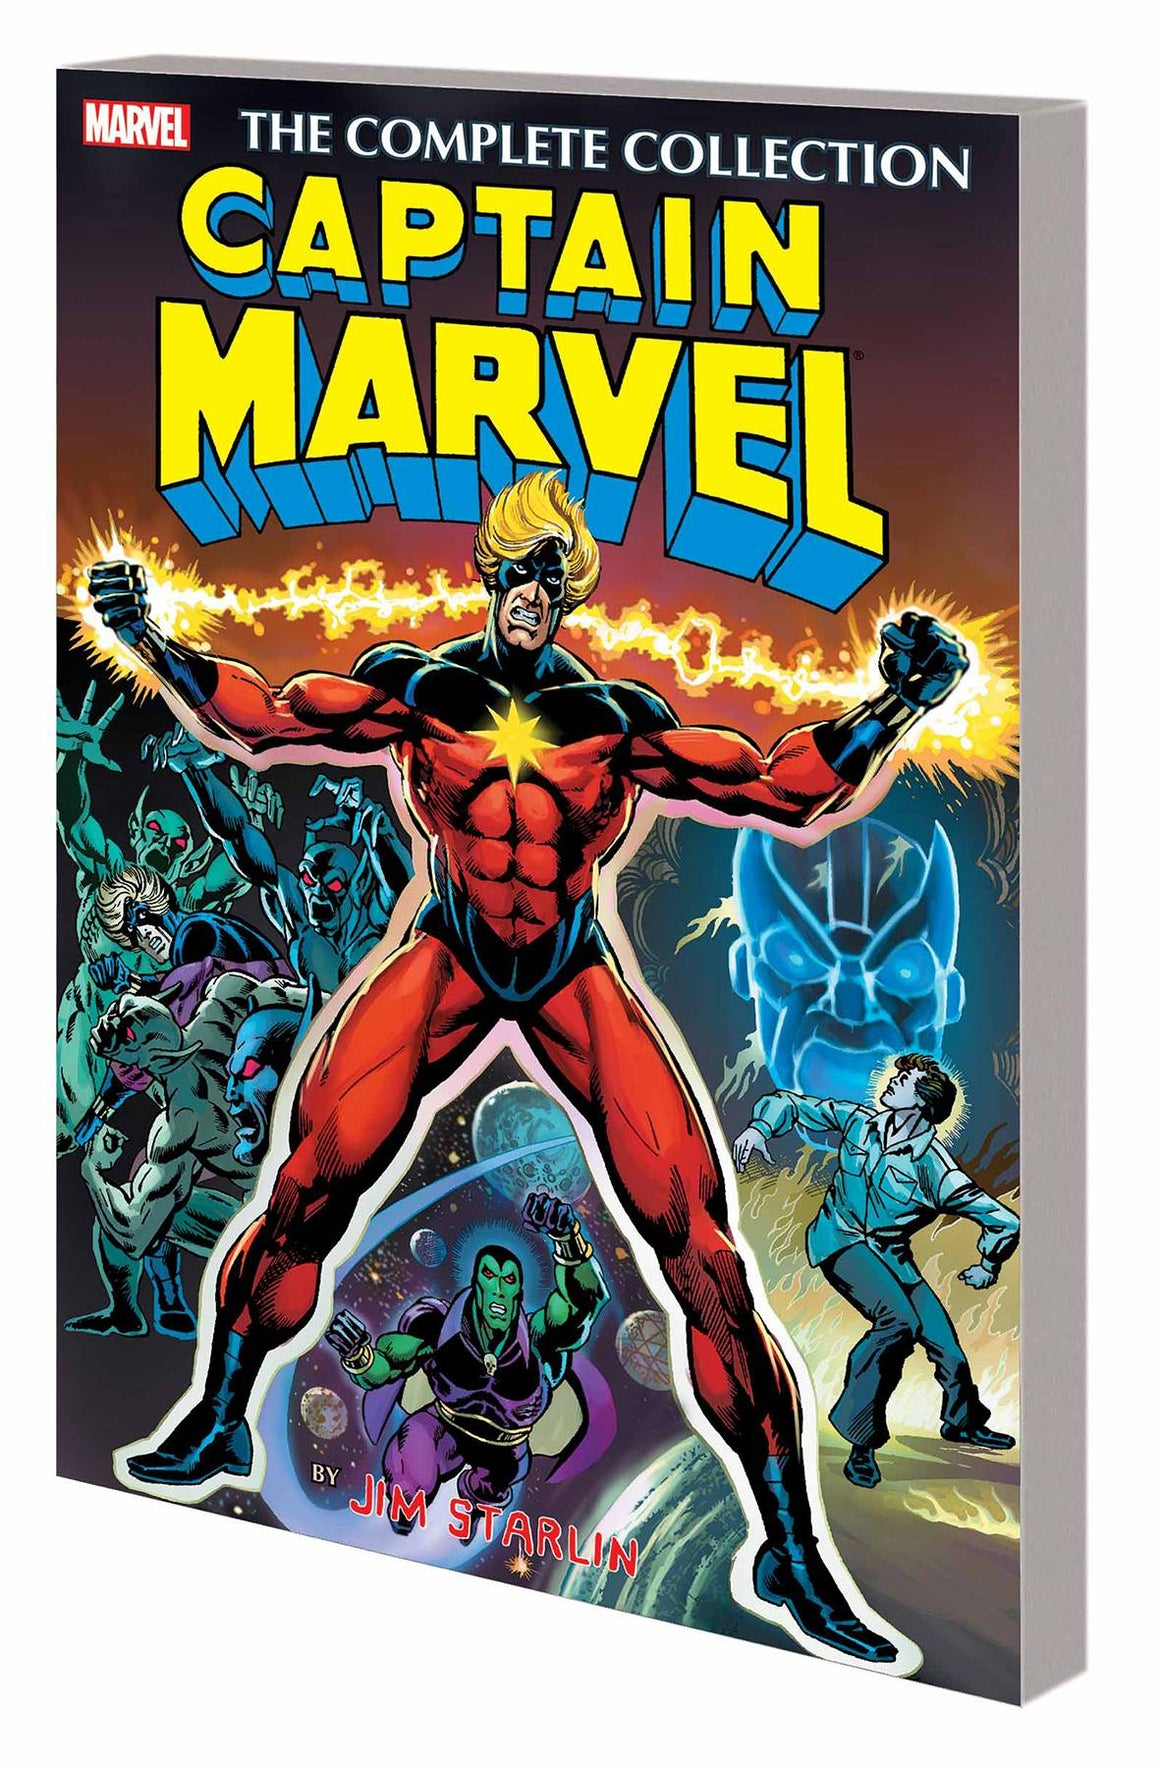 CAPTAIN MARVEL BY JIM STARLIN TP COMPLETE COLLECTION